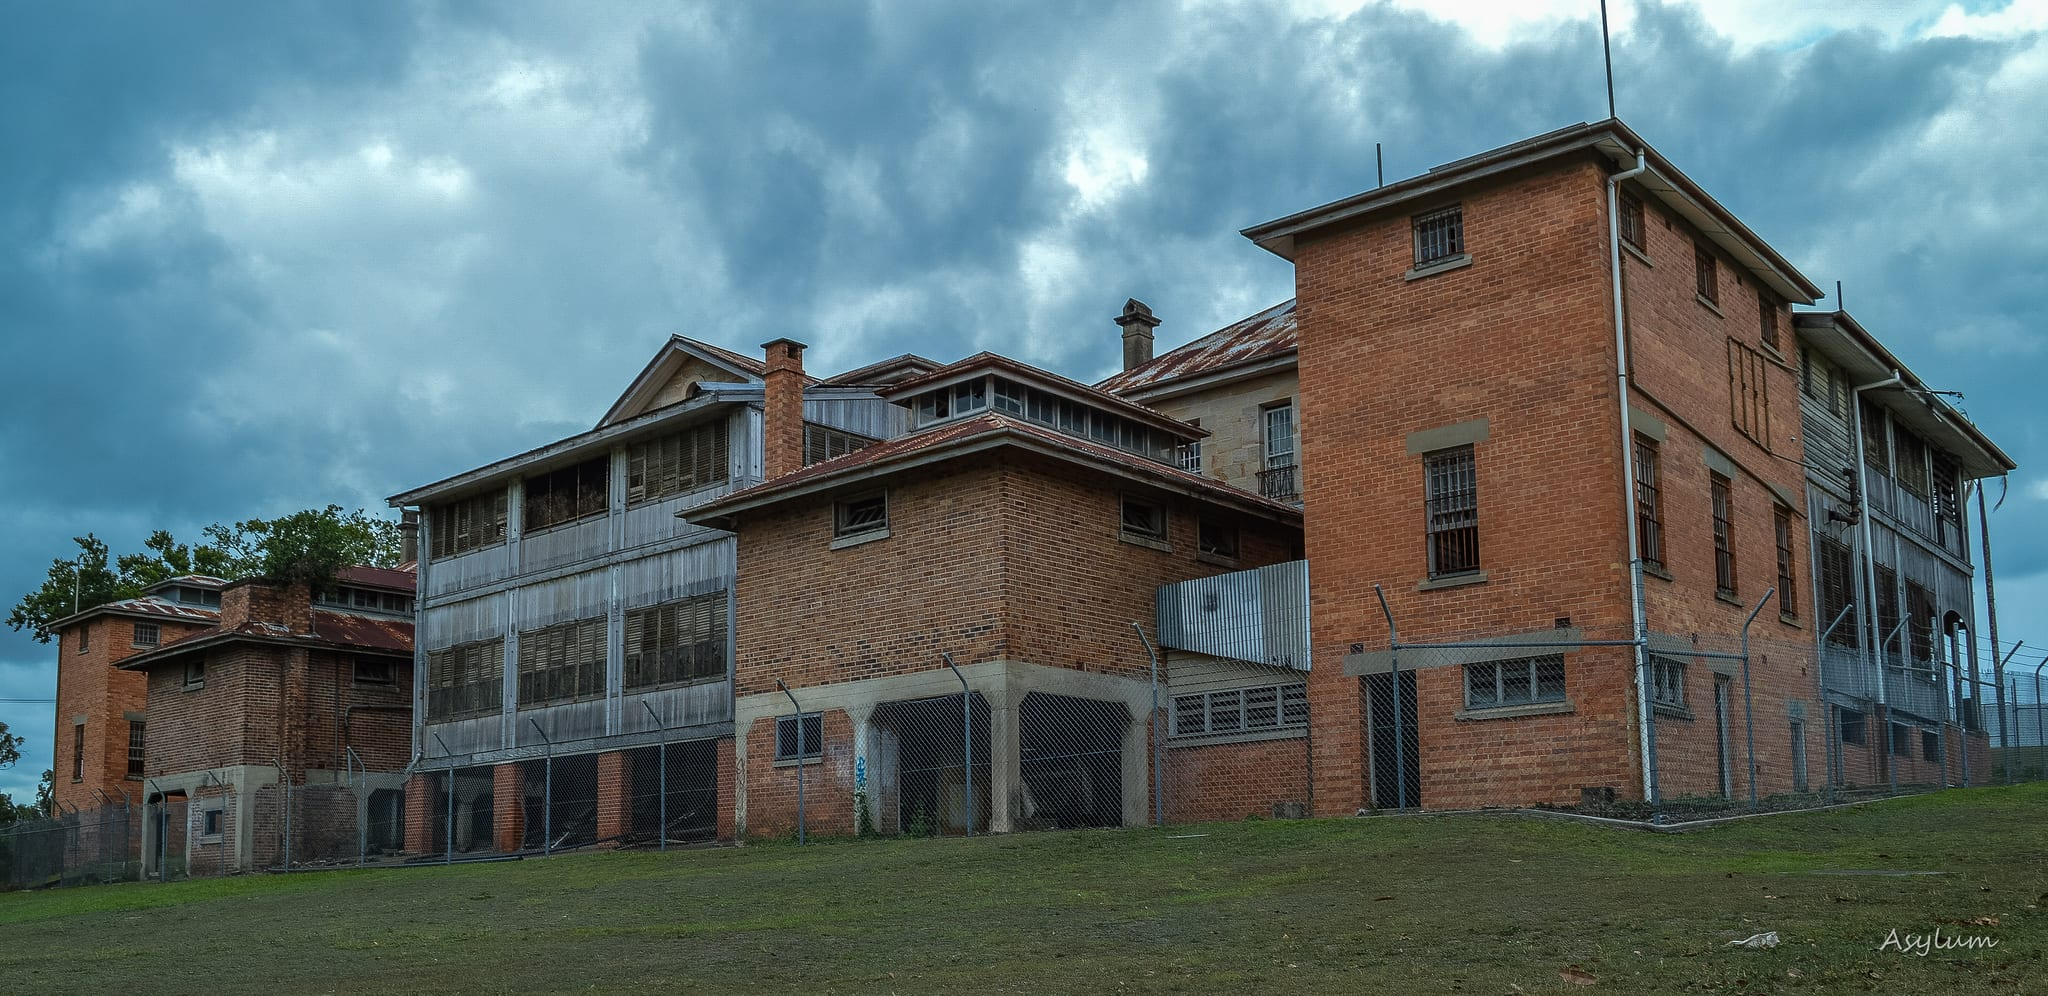 The Insane Asylum Flickr CC darkday